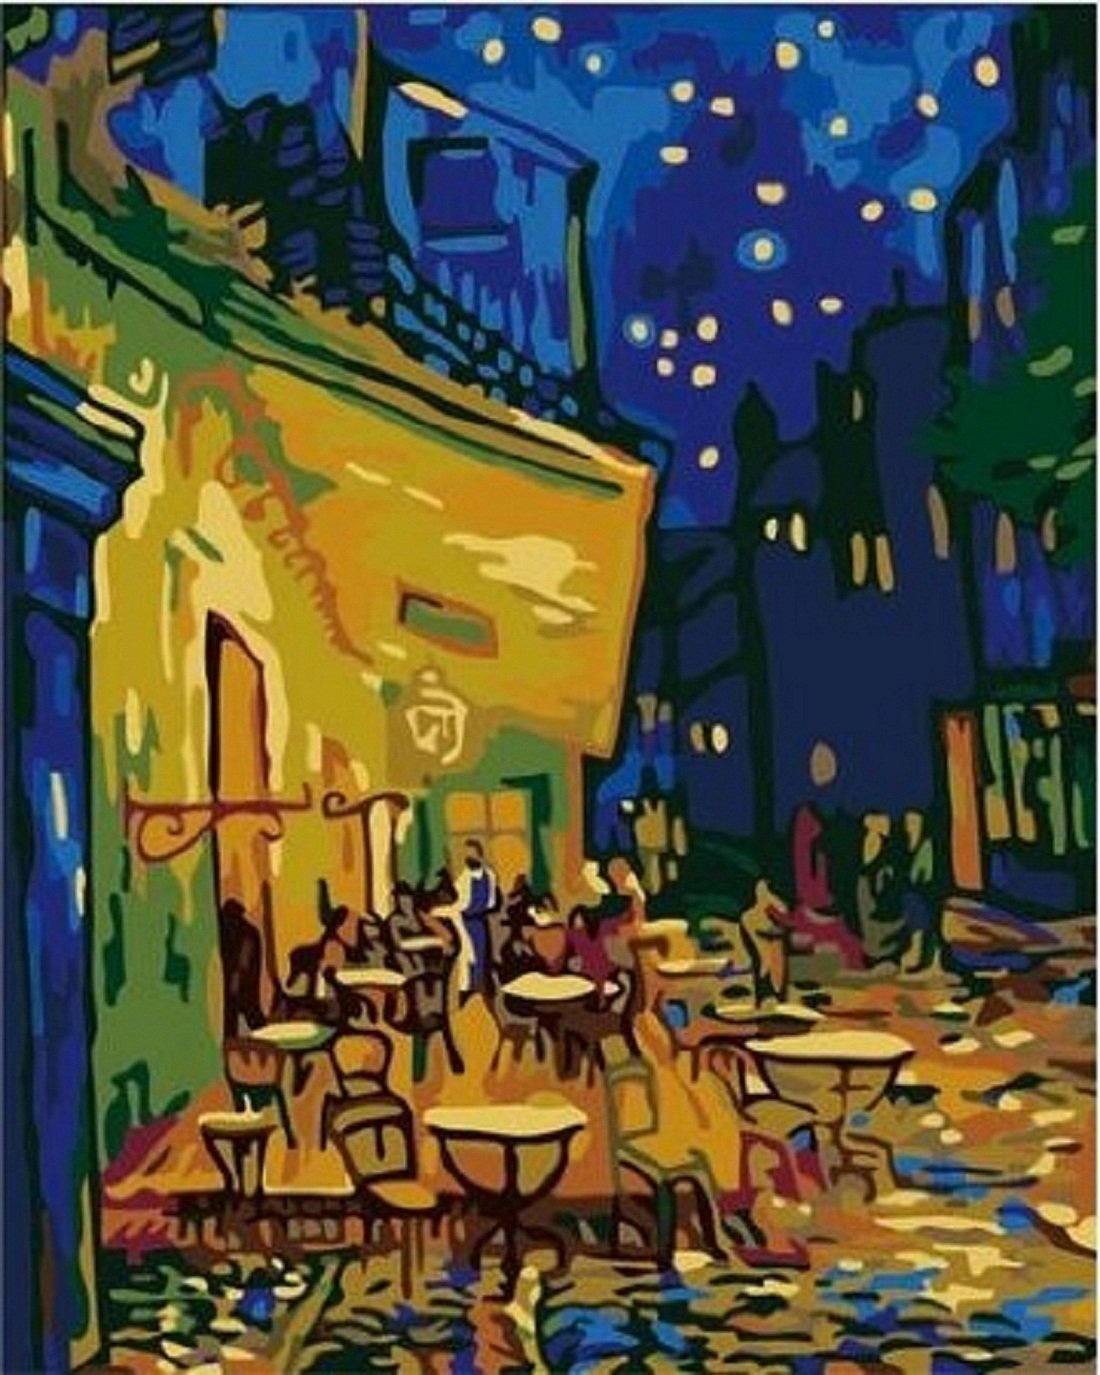 Diy oil painting, paint by number kit- worldwide famous oil painting The Night Cafe in the Place Lamartine in Arles by Van Gogh 1620 inch. by Colour Talk